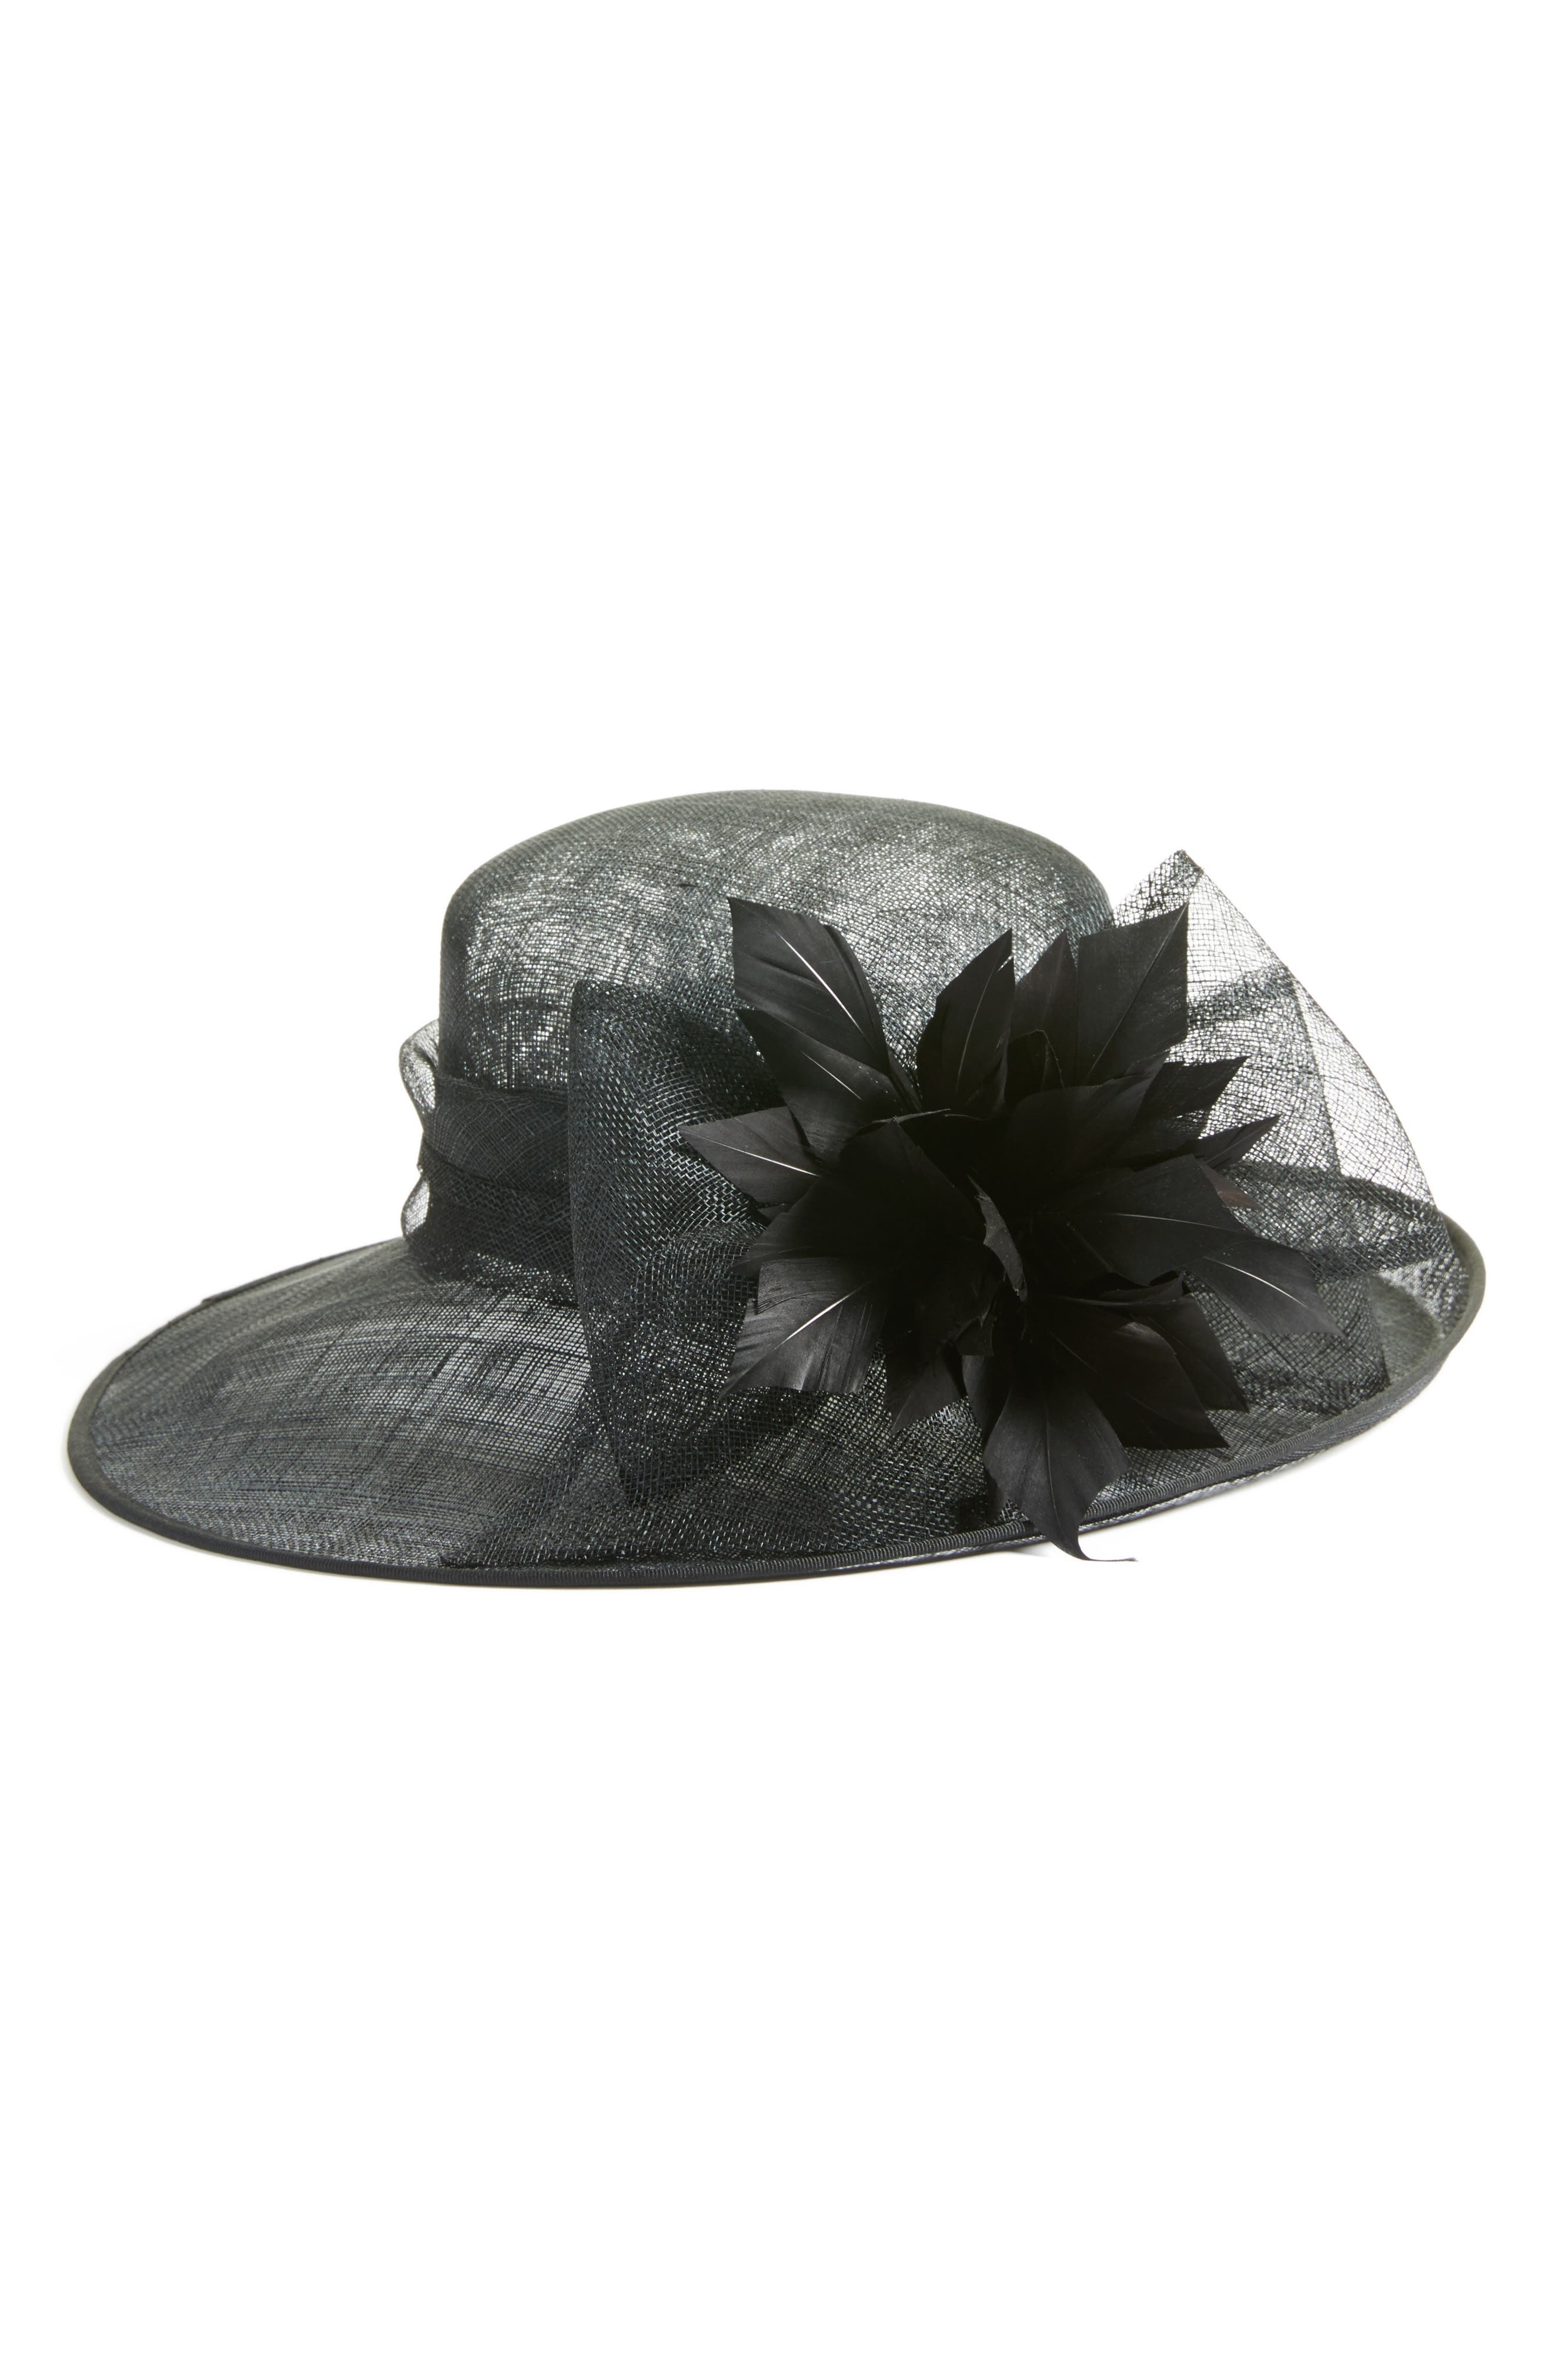 Nordstrom Feather & Bow Hat